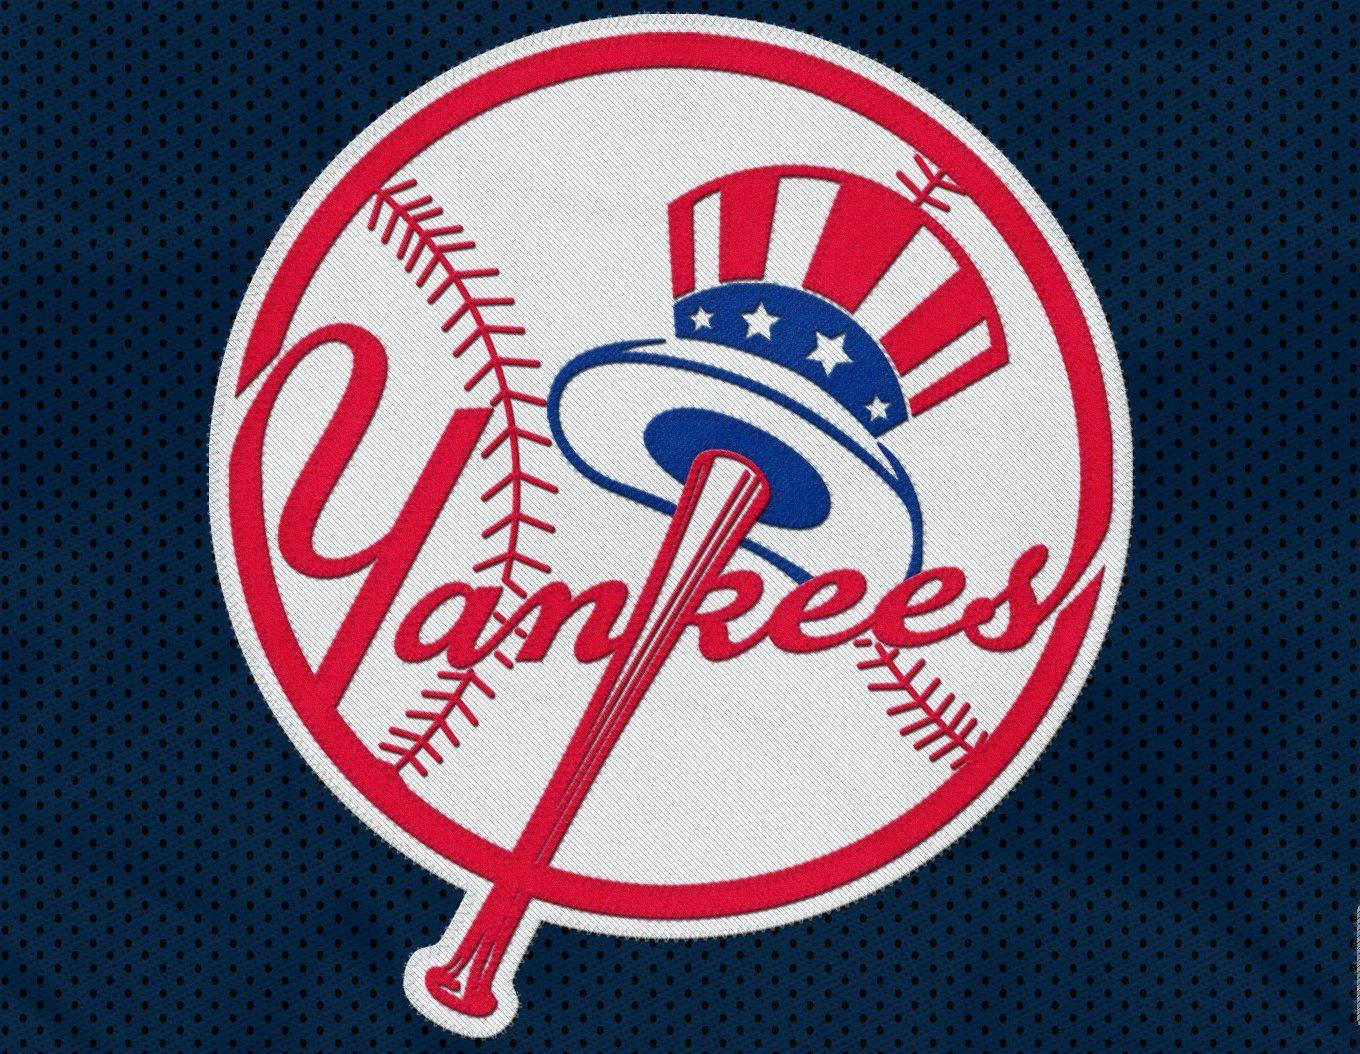 New York Yankees Wallpapers HD, Wallpaper, New York Yankees